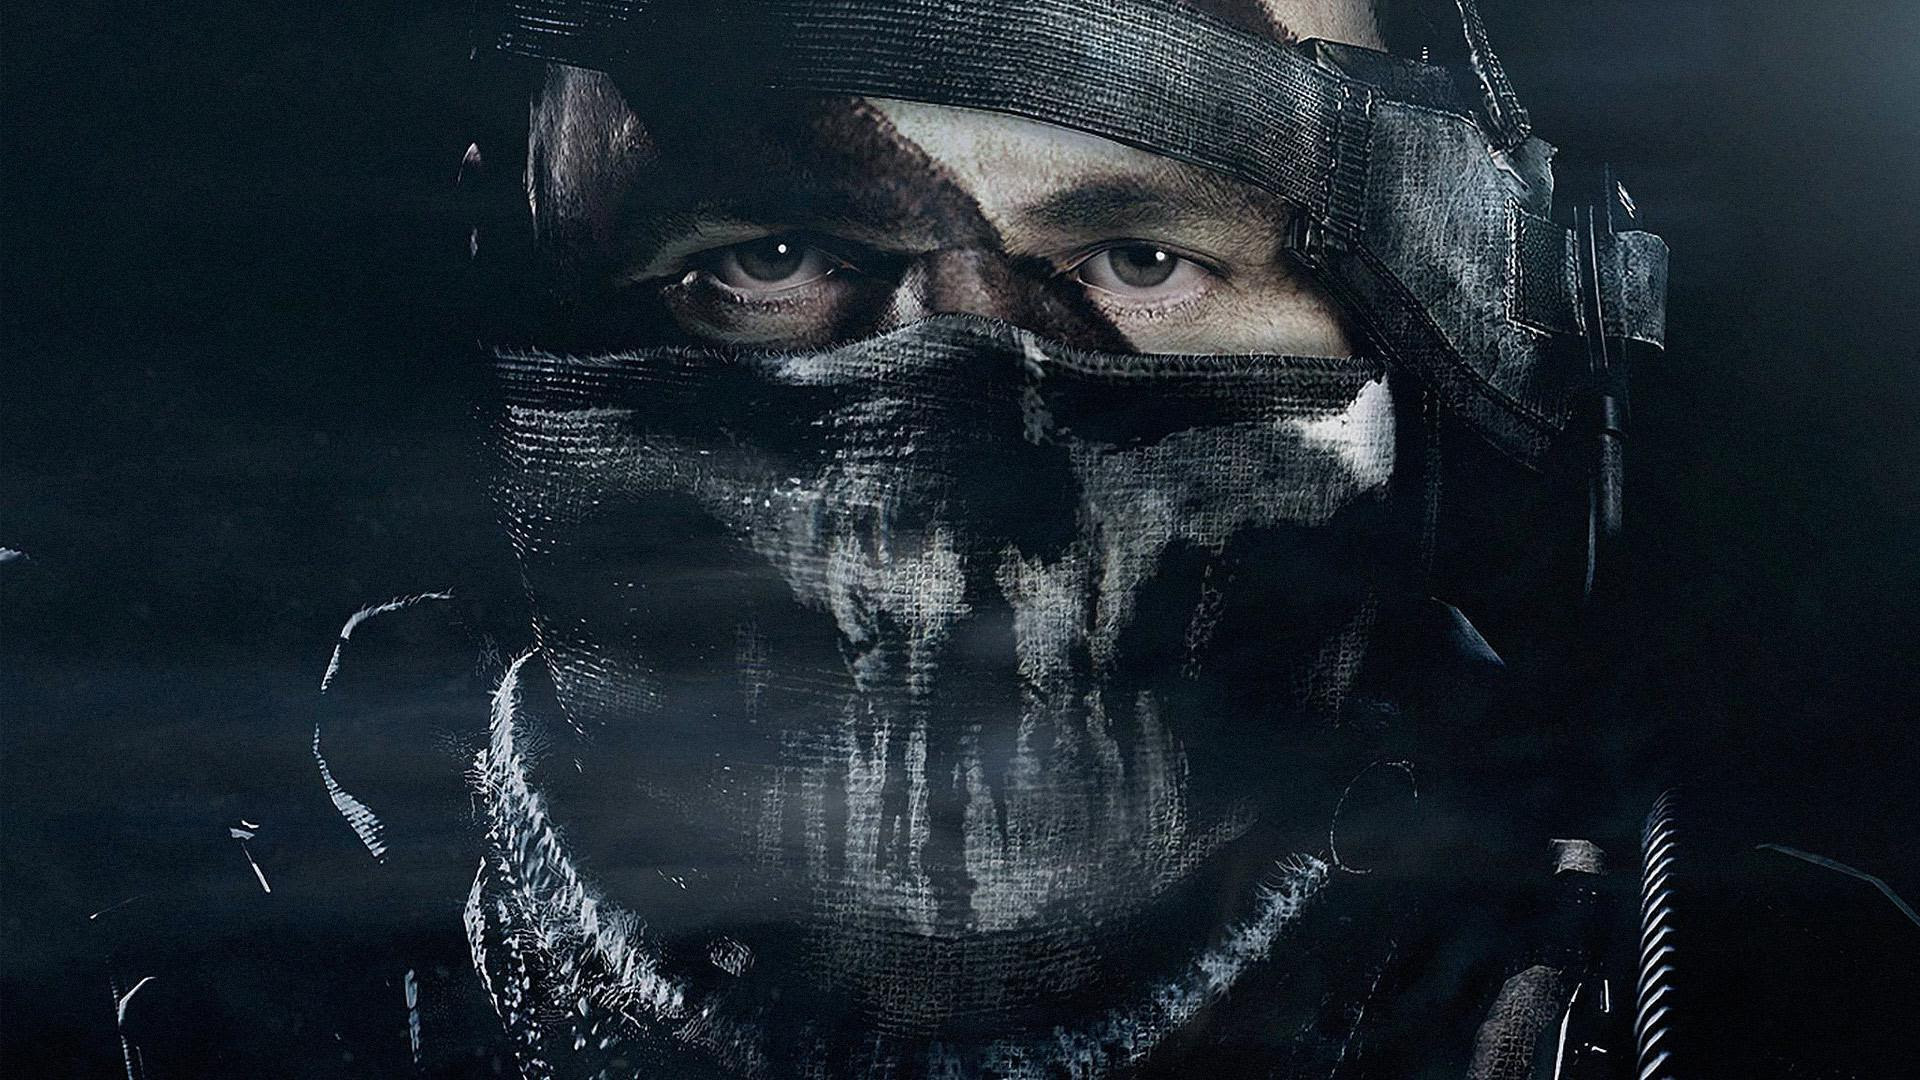 Call Of Duty Ghosts 2015 Wallpapers - Wallpaper Cave